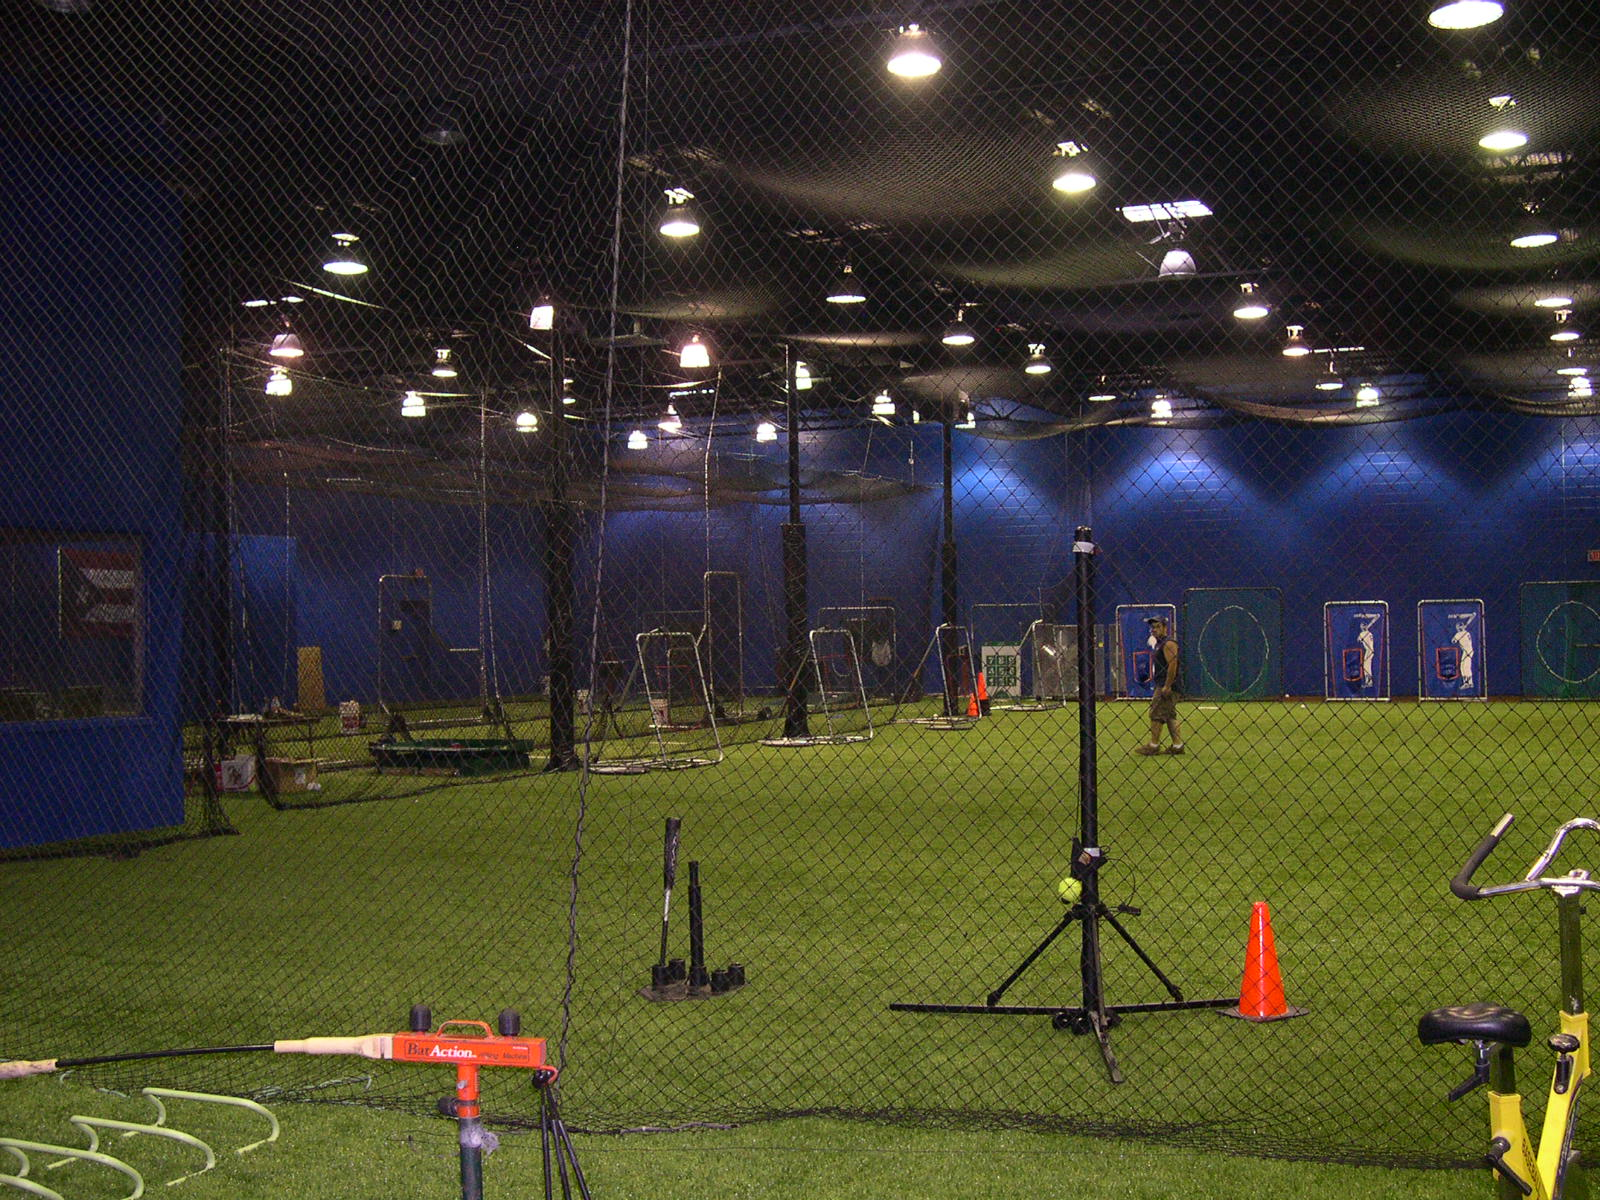 1600x1200 source mirror for Indoor cricket net design